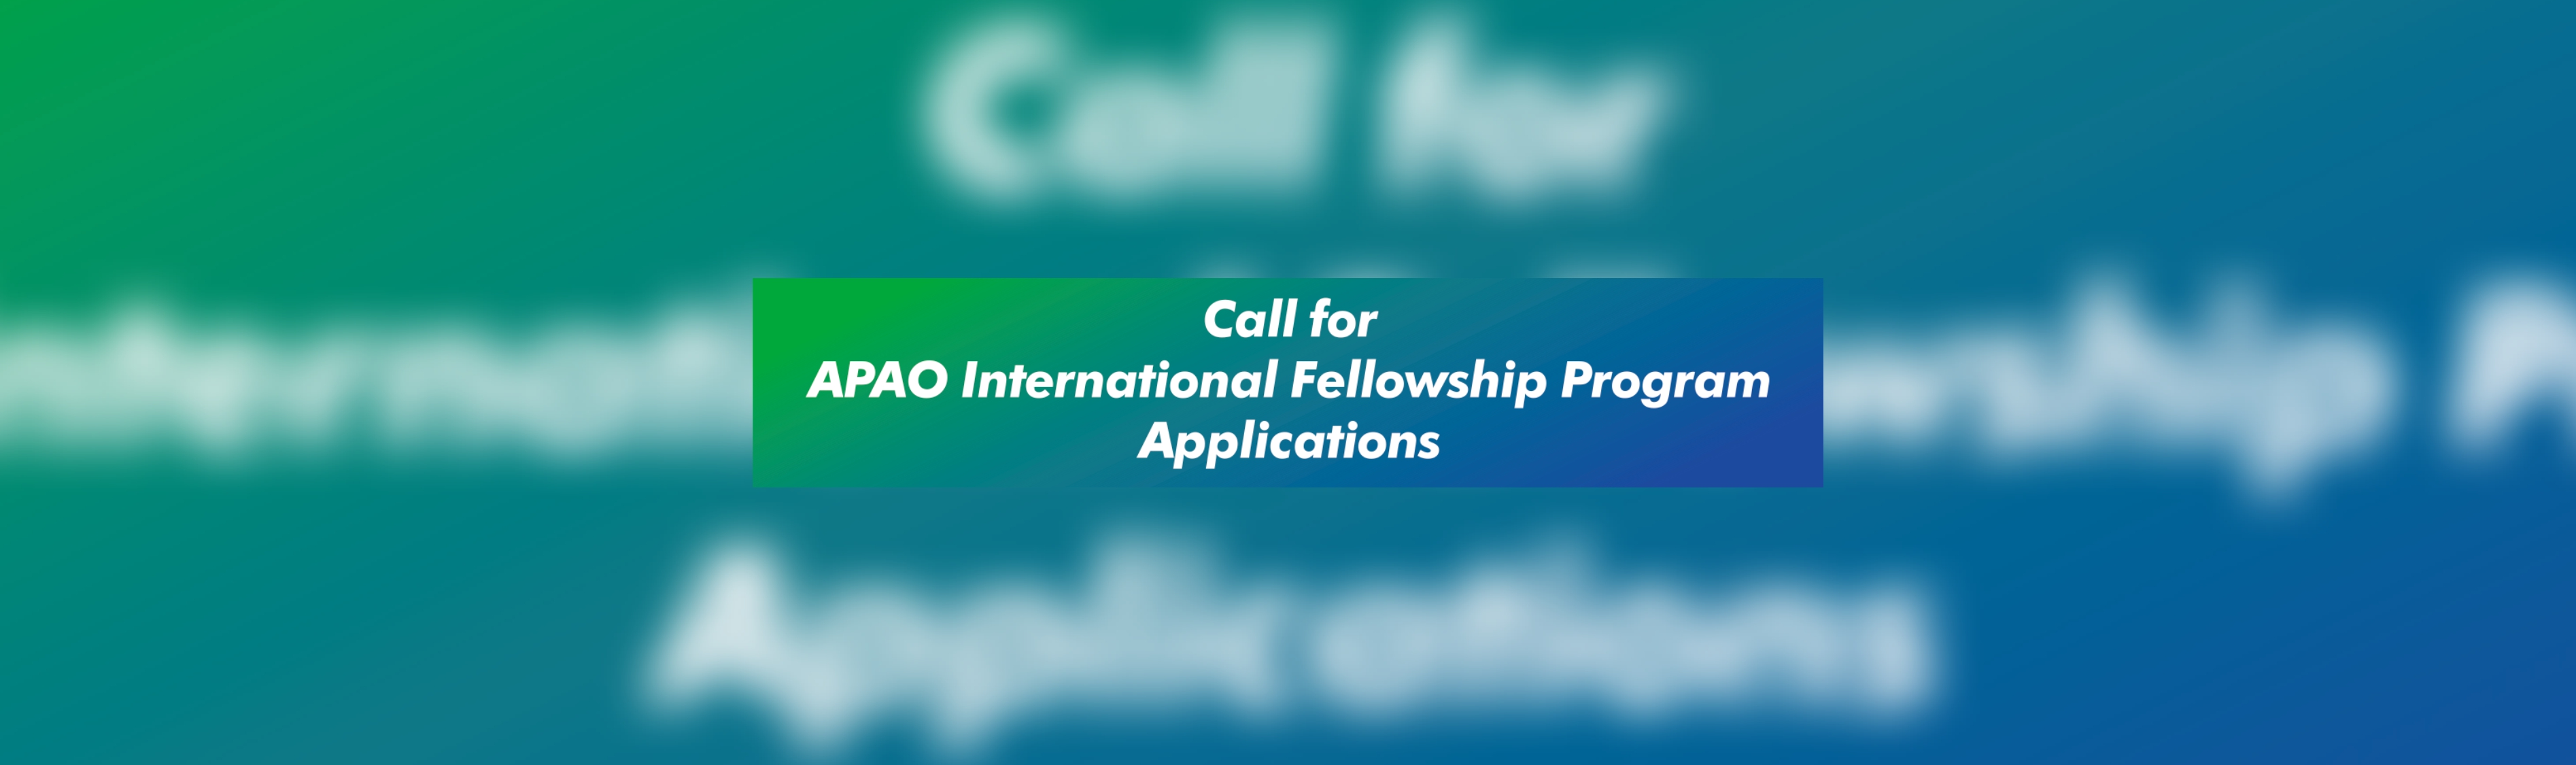 Call for APAO Internatinal Fellowship Program Applications